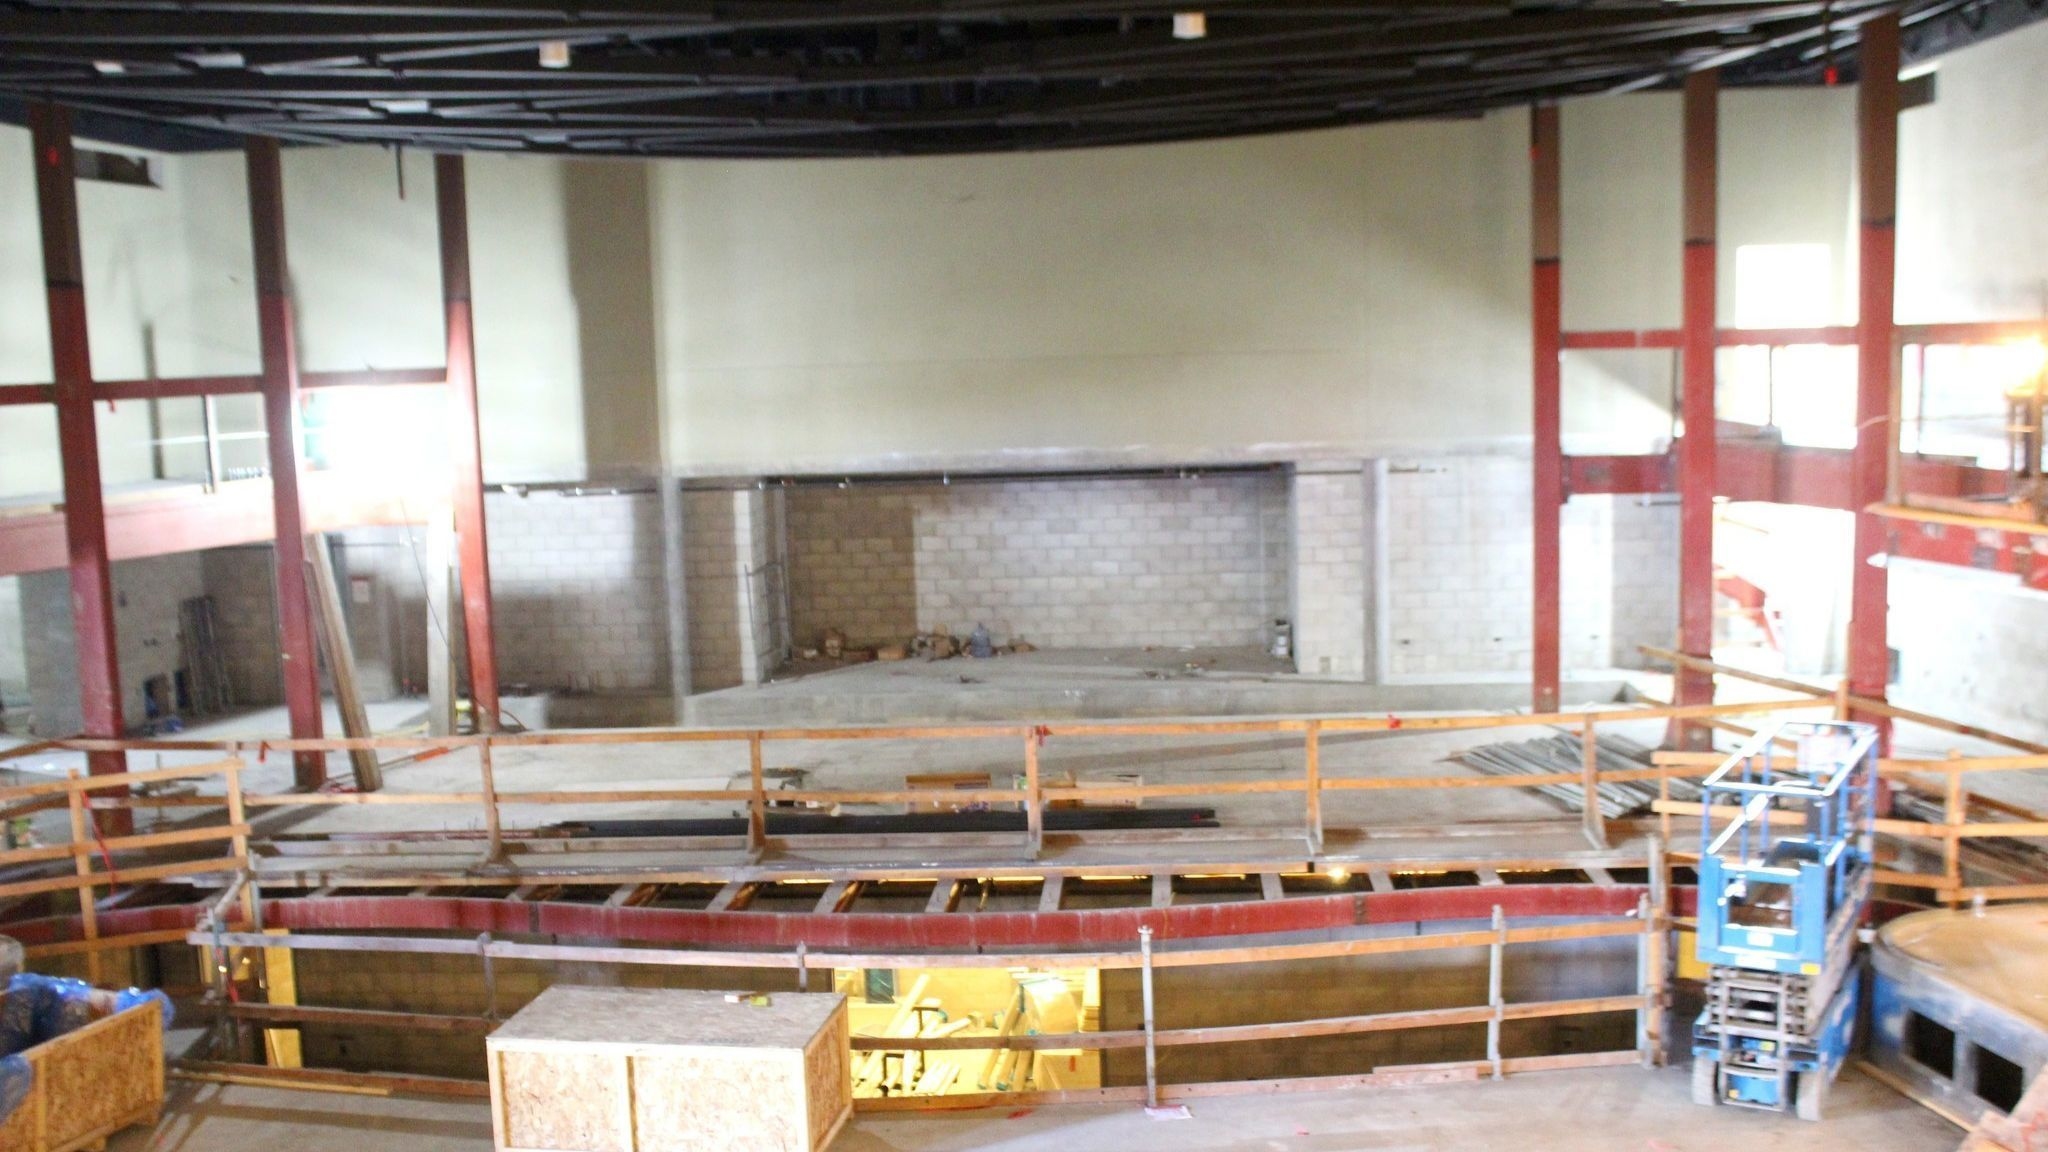 The 510-seat main room, The Baker-Baum Concert Hall, is now fully enclosed and mostly built. This view looks across the site from what will be a second-floor balcony toward the s